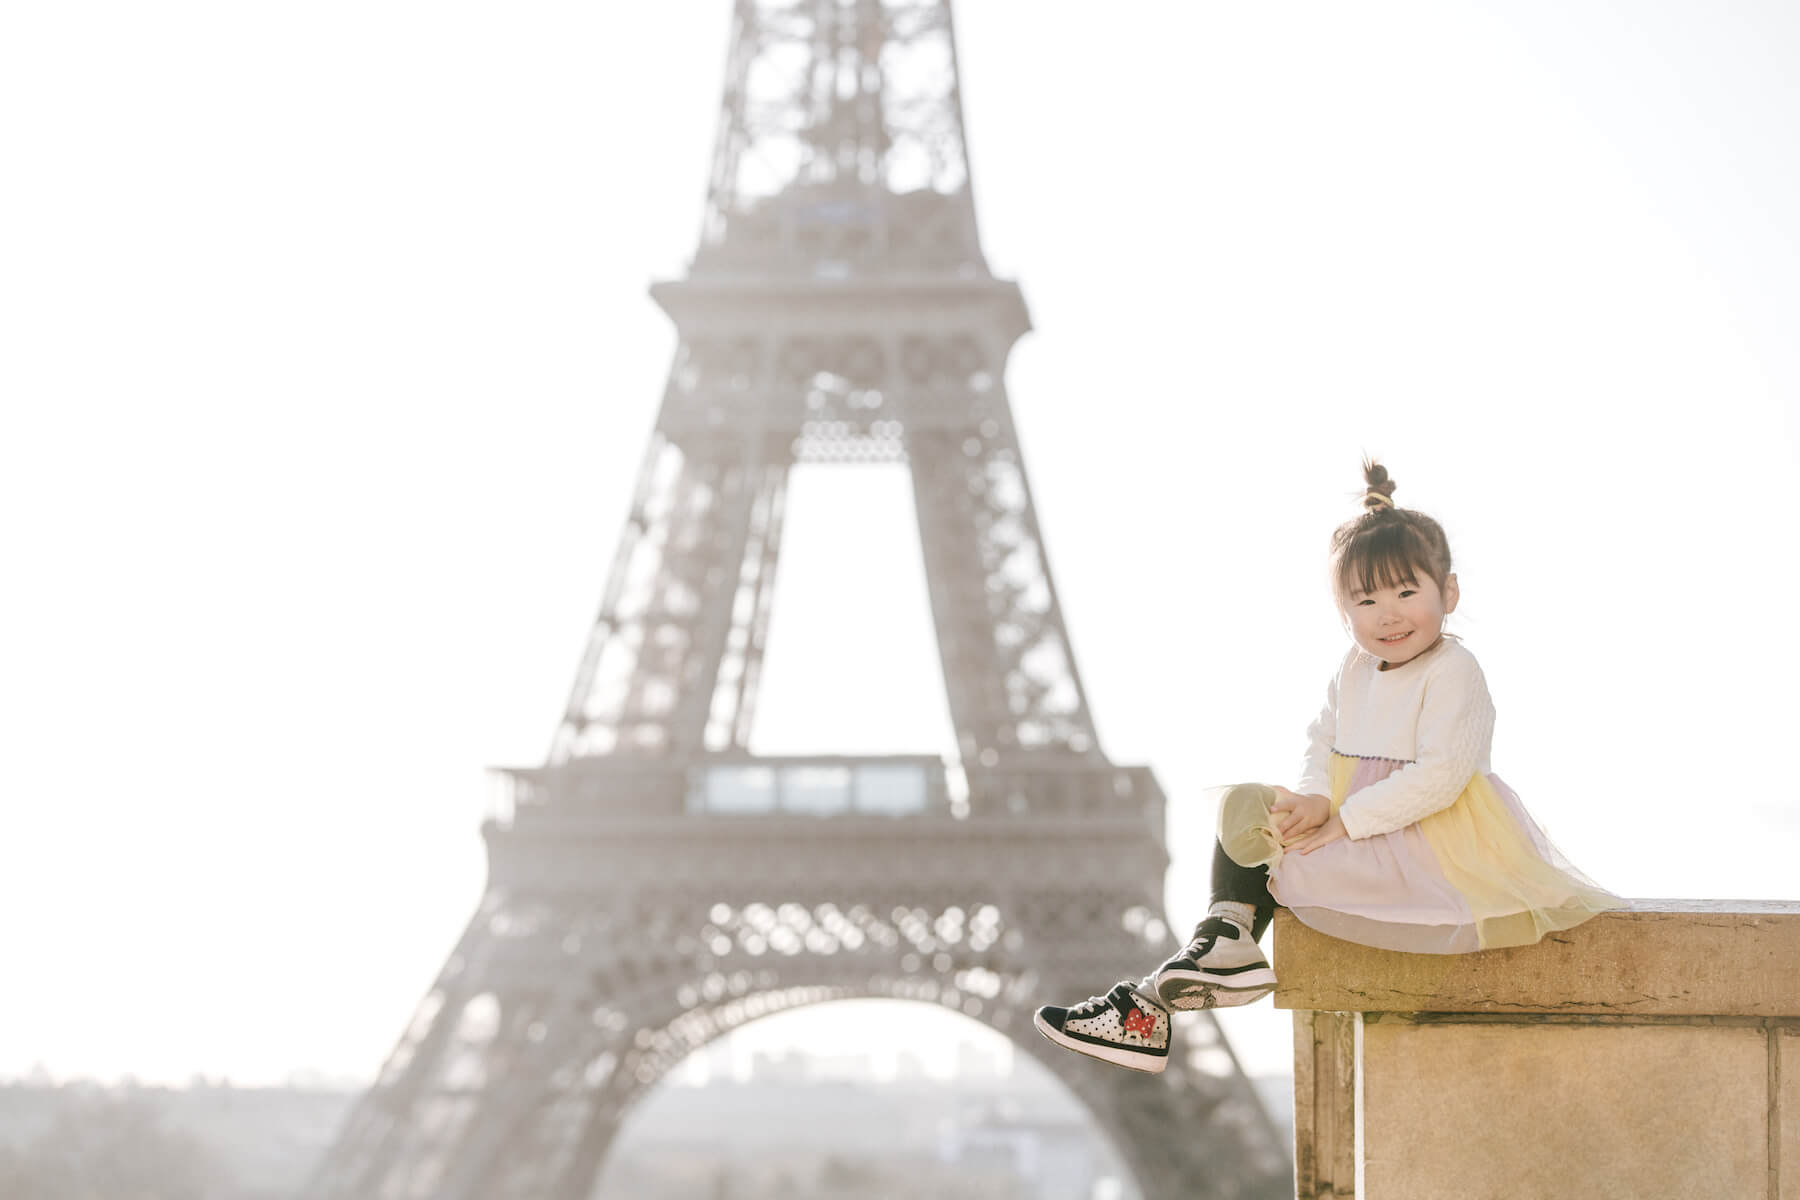 a small girl sitting on a ledge with the Eiffel Tower in the background in Paris, France